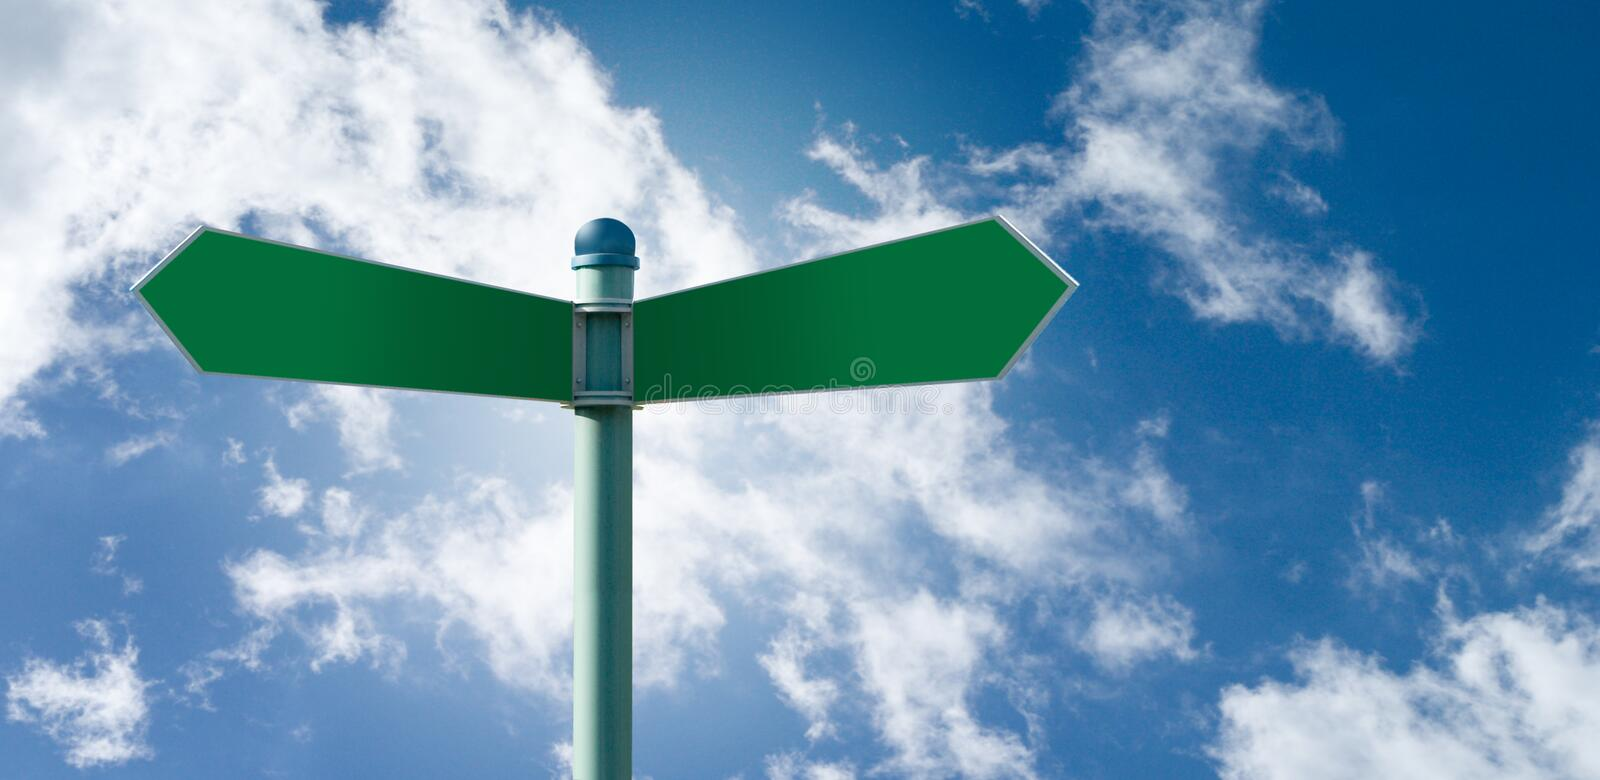 Blank street sign post with 2 signs. Customizable green street sign on a blue cloudy sky stock image